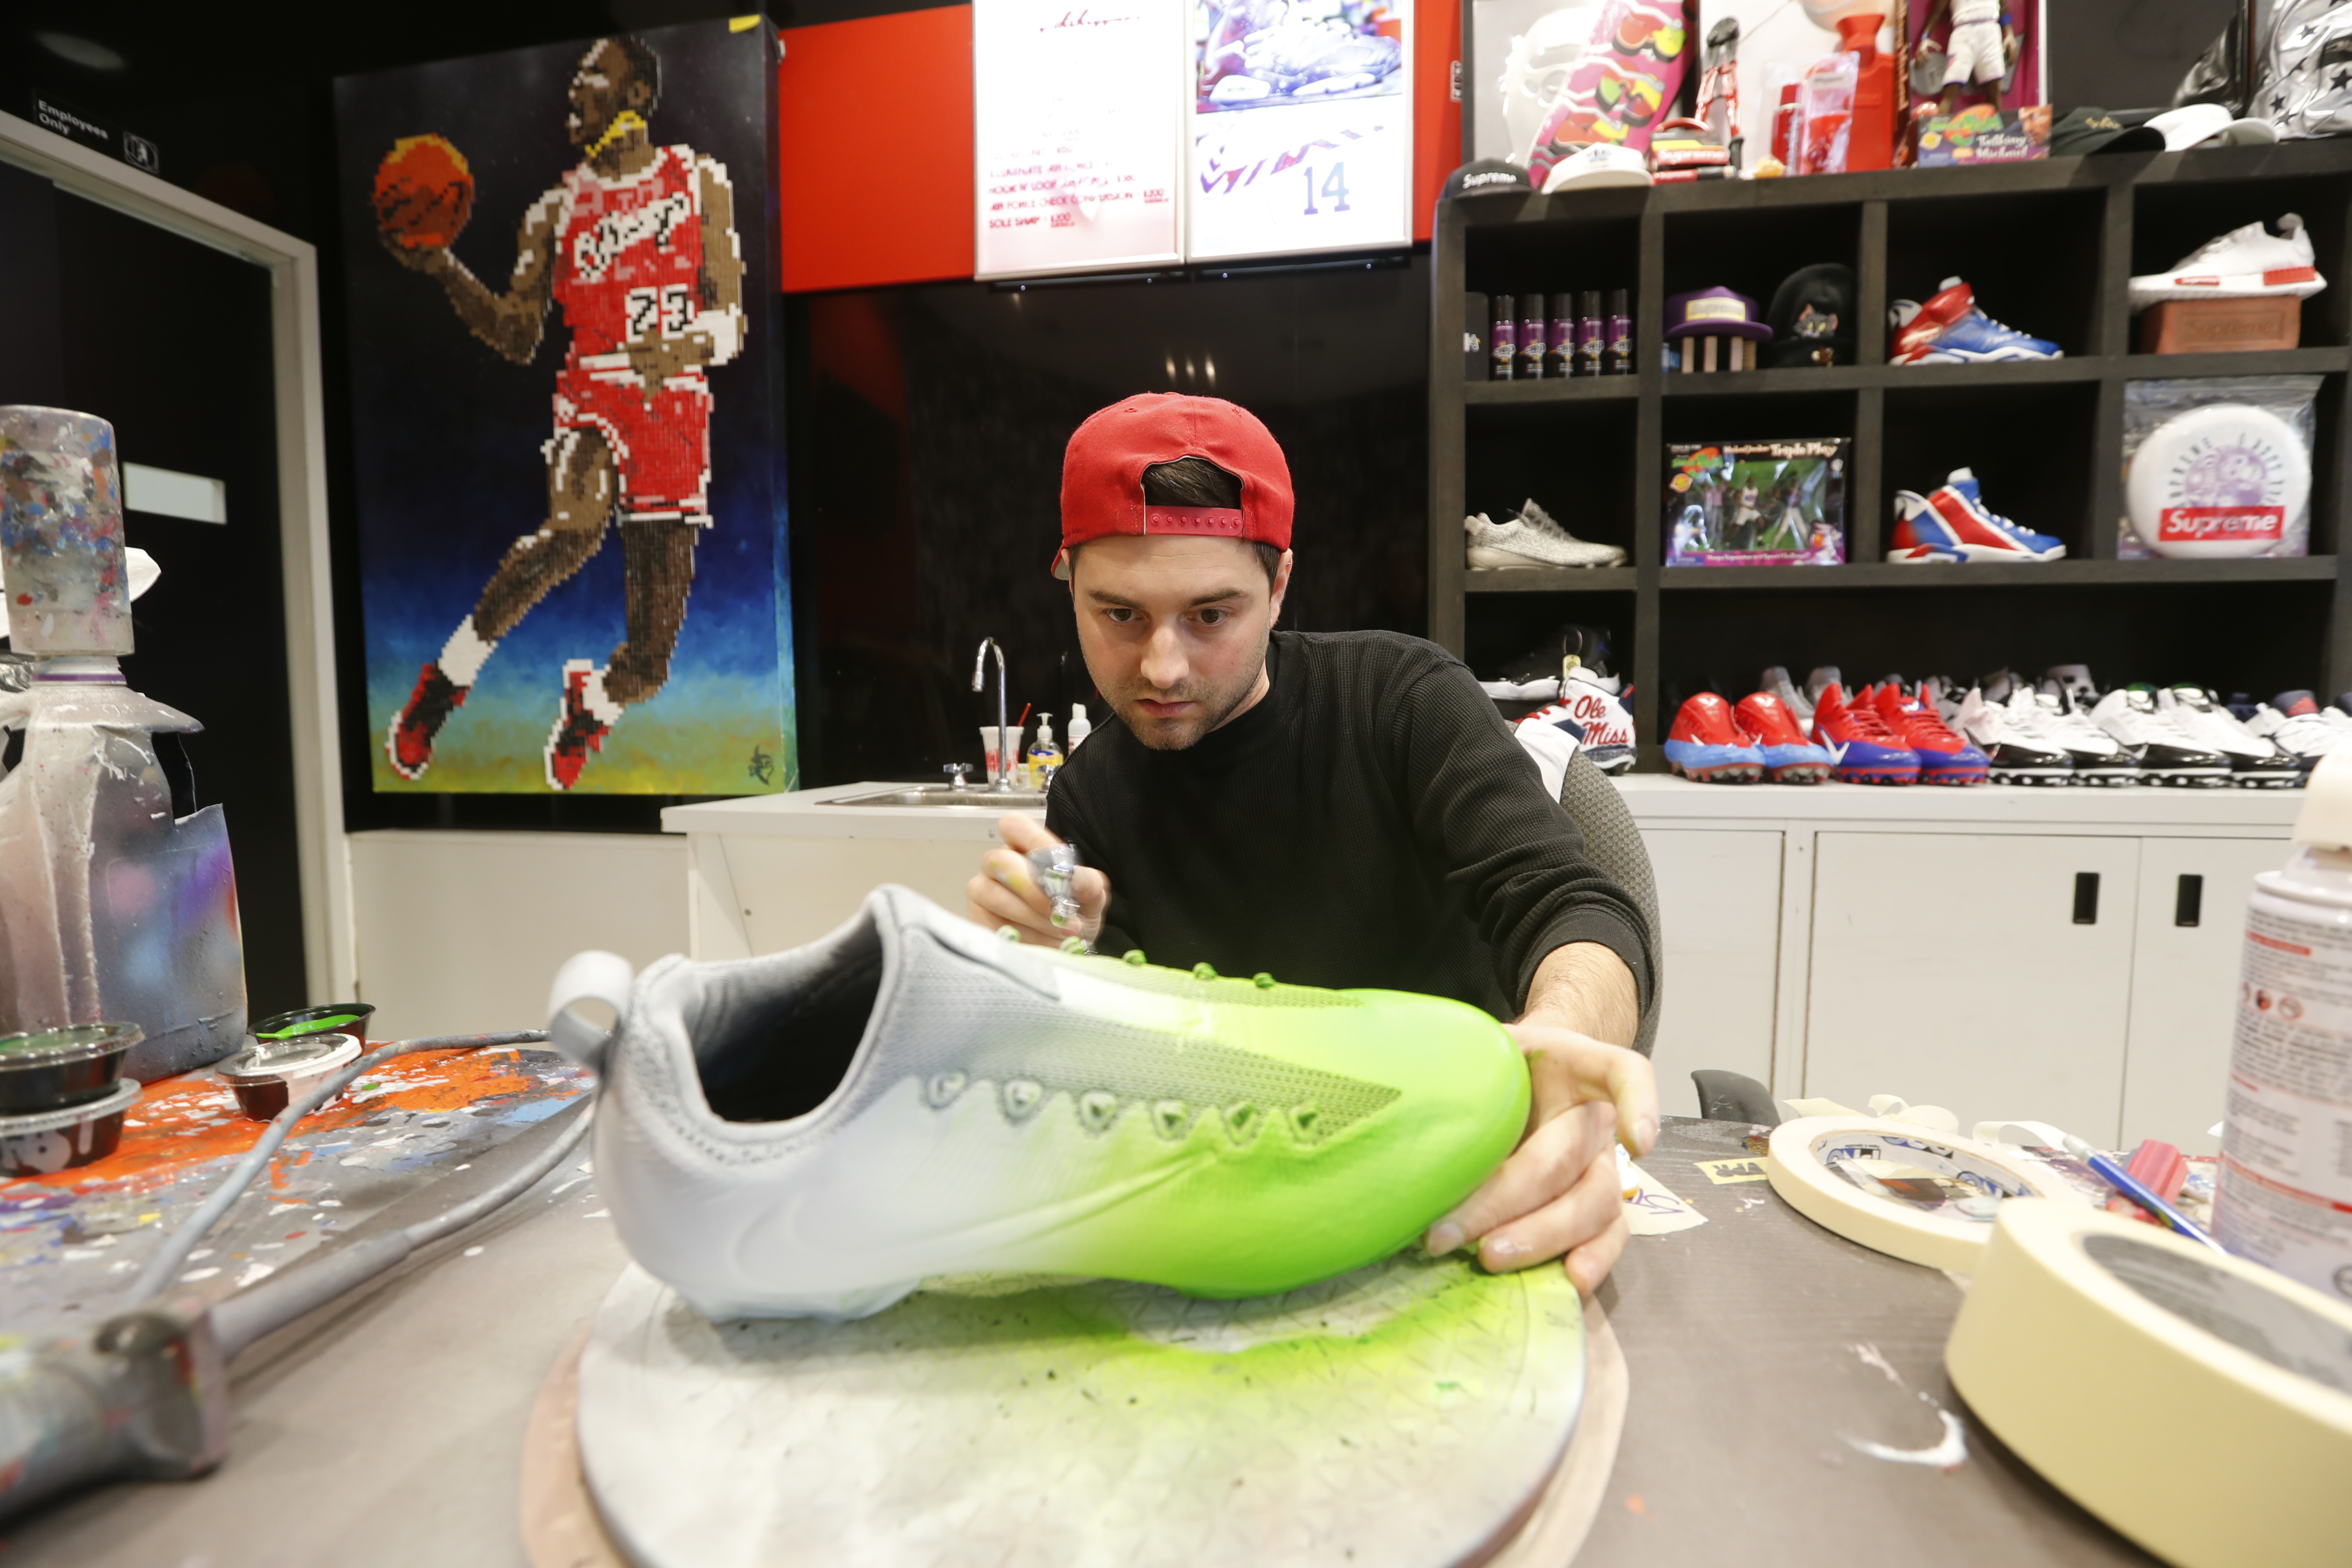 Nicholas Avery works on a pair of cleats for Marquise Goodwin of the Buffalo Bills. (Harry Scull Jr./Buffalo News)